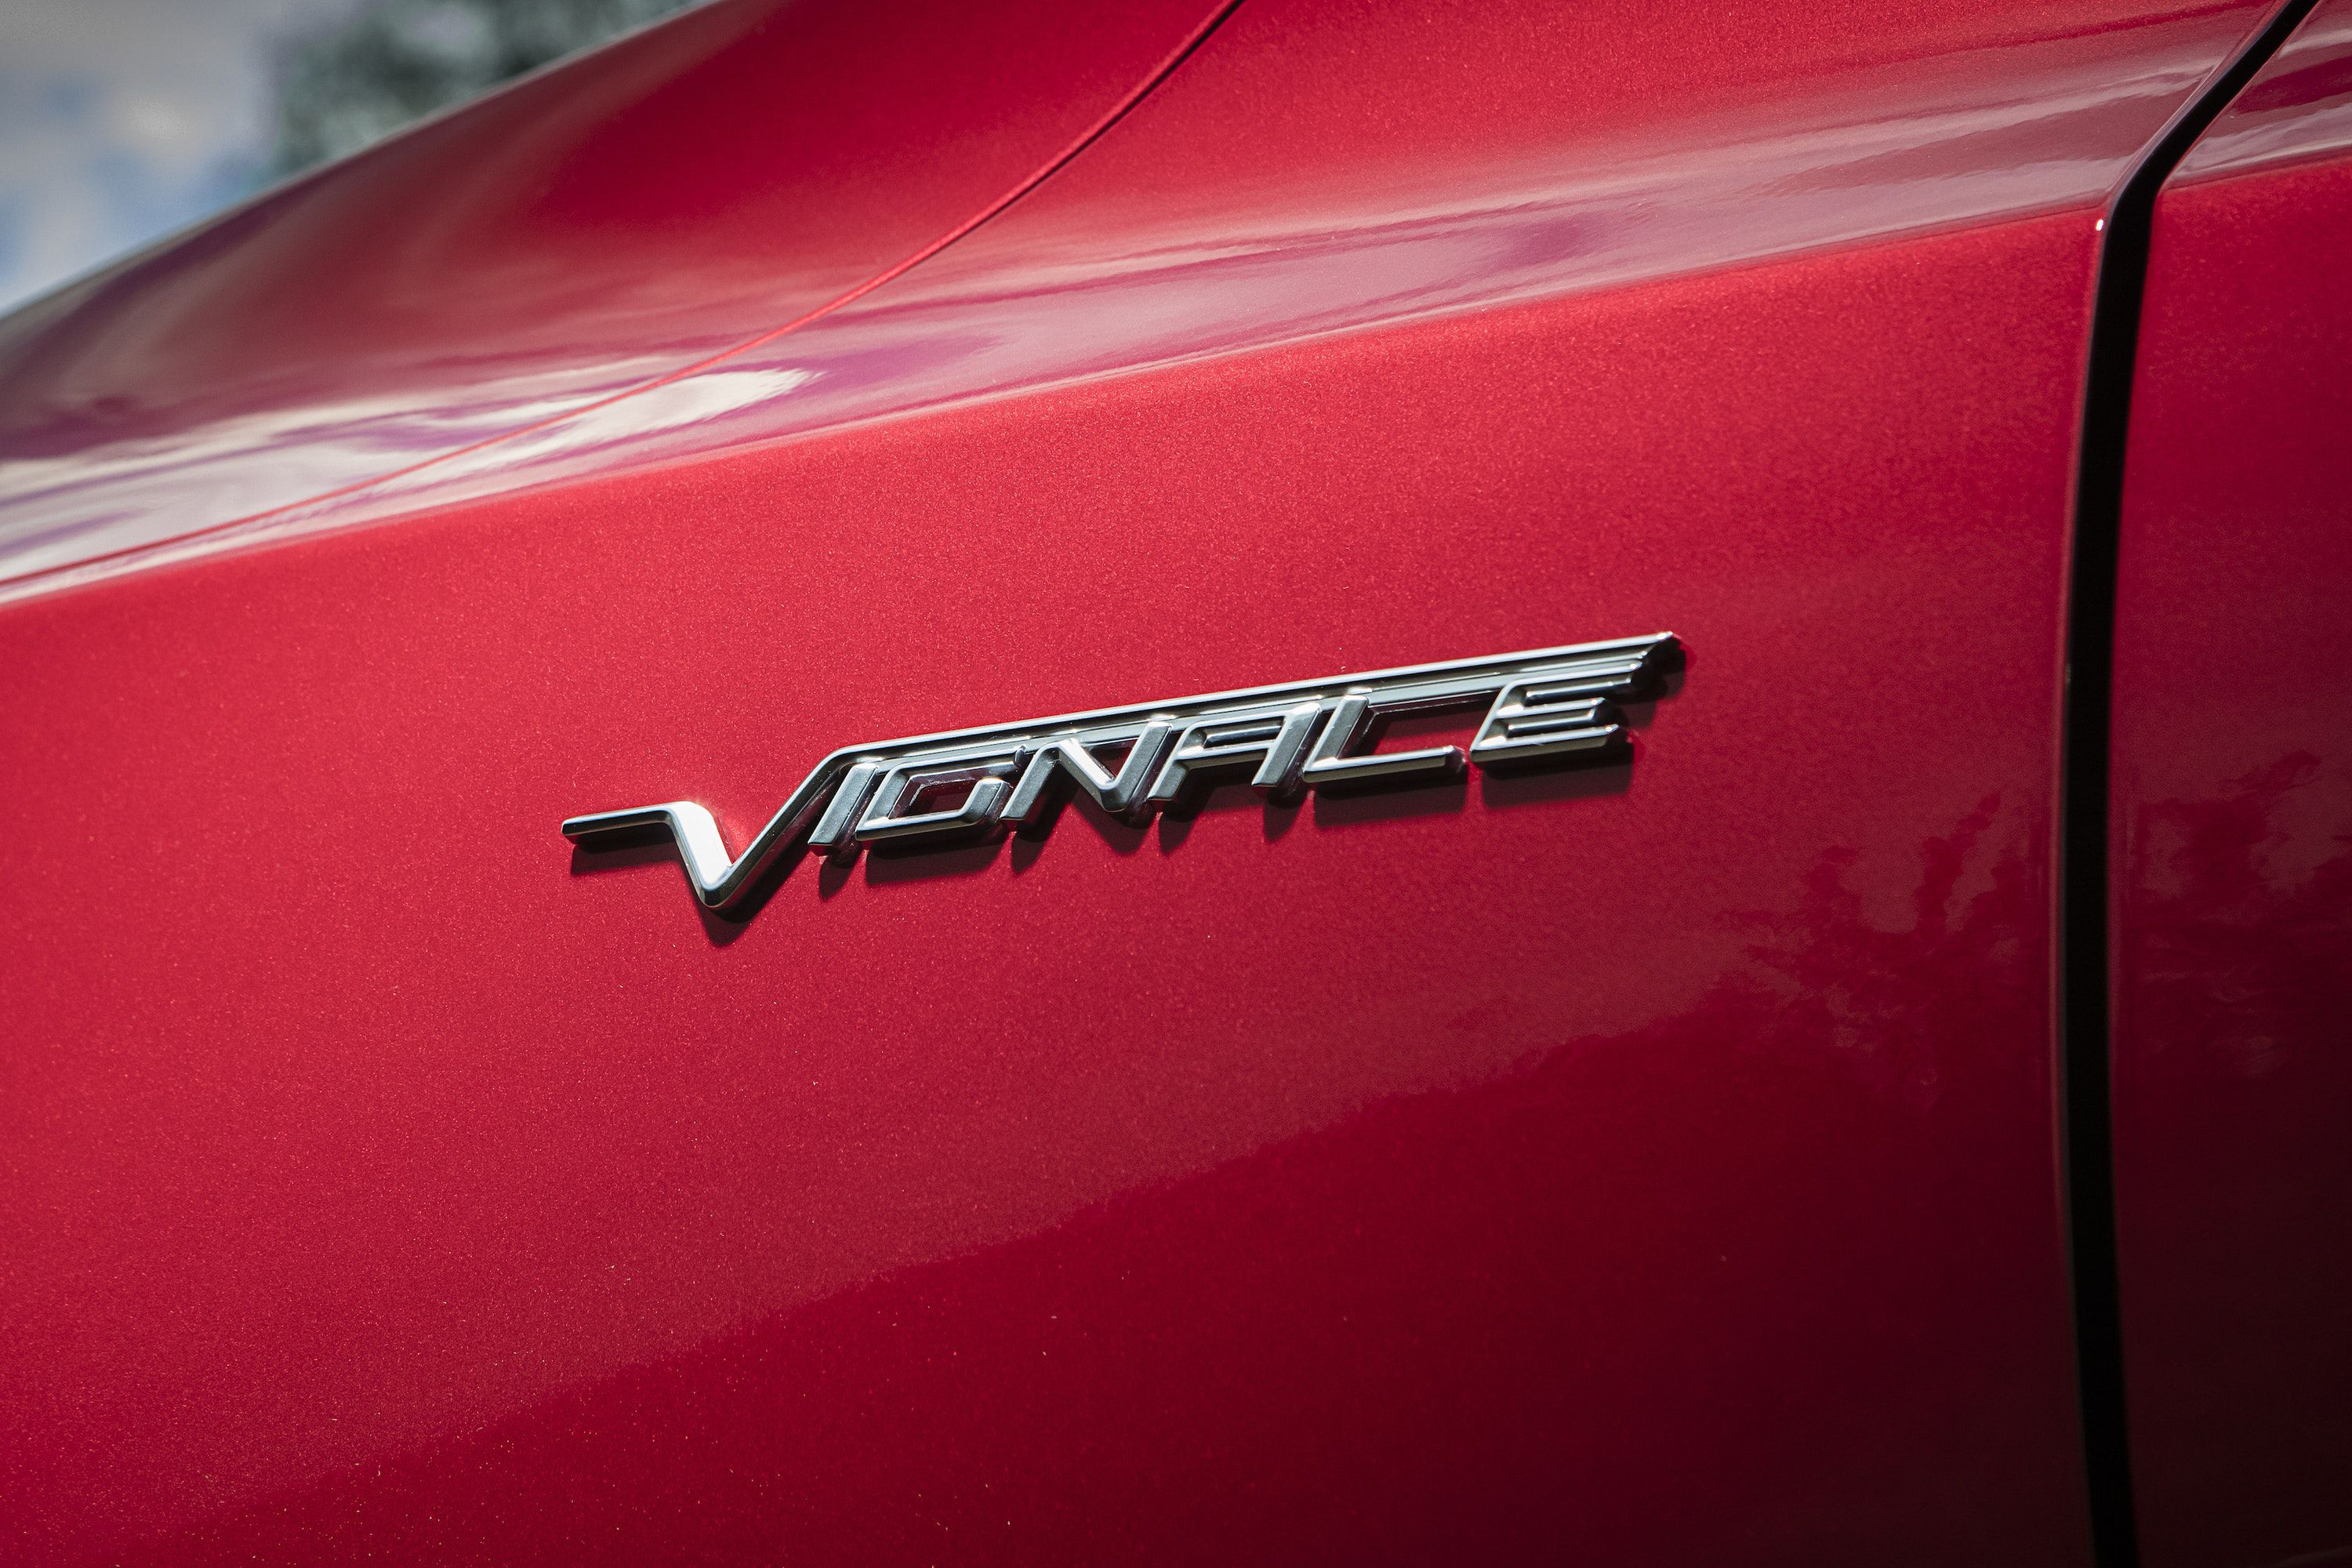 Close up of Vignale badge